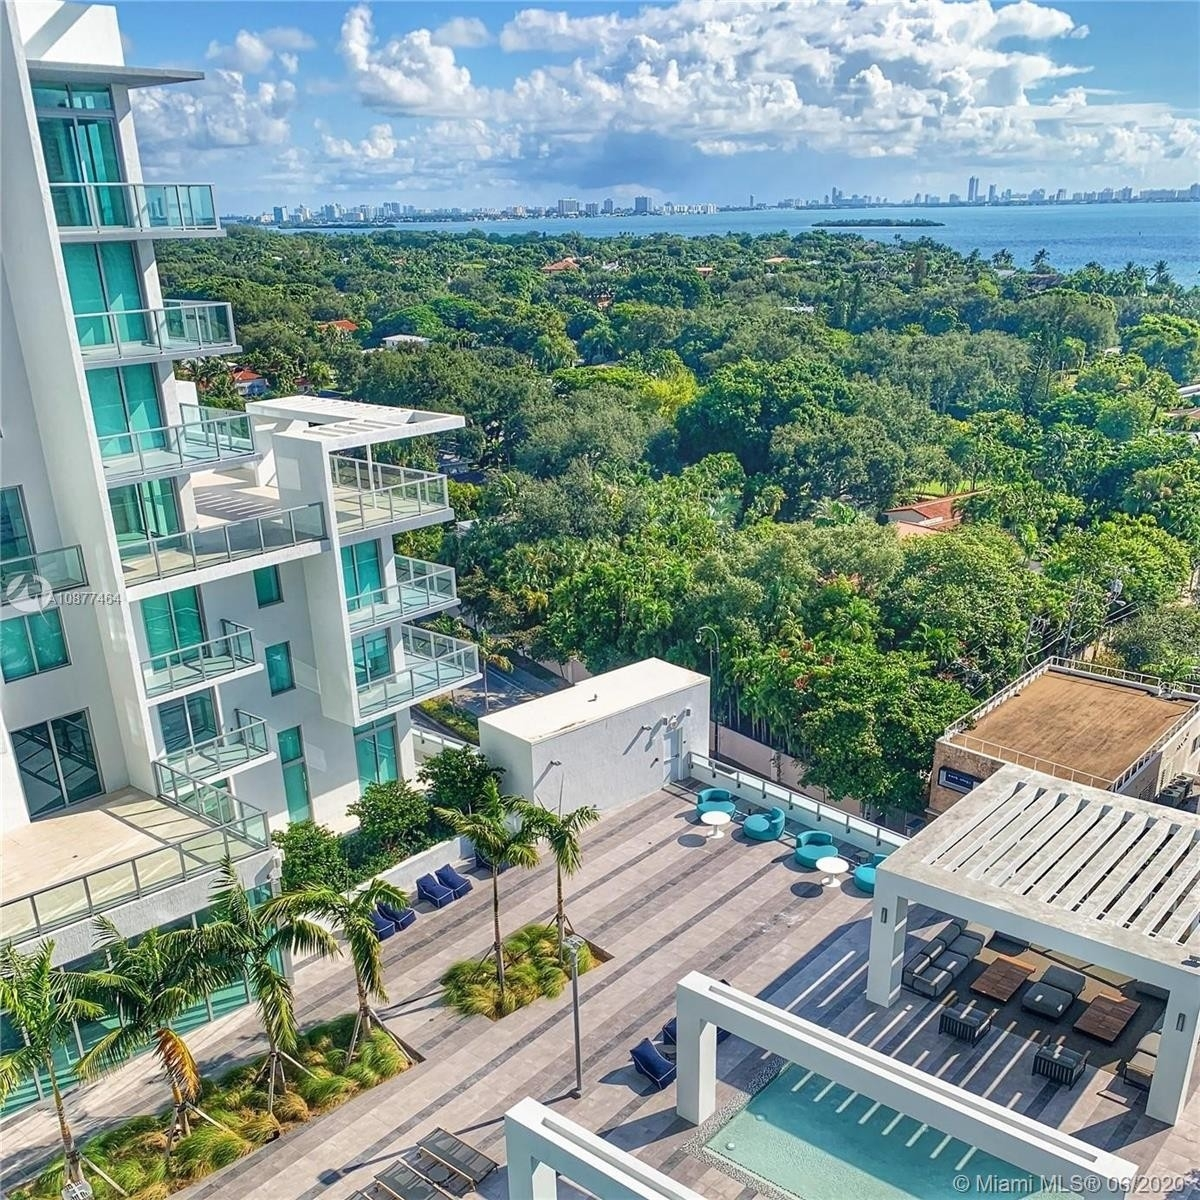 Condominium at 3900 Biscayne Blvd , 800 Sebring, FL 33137